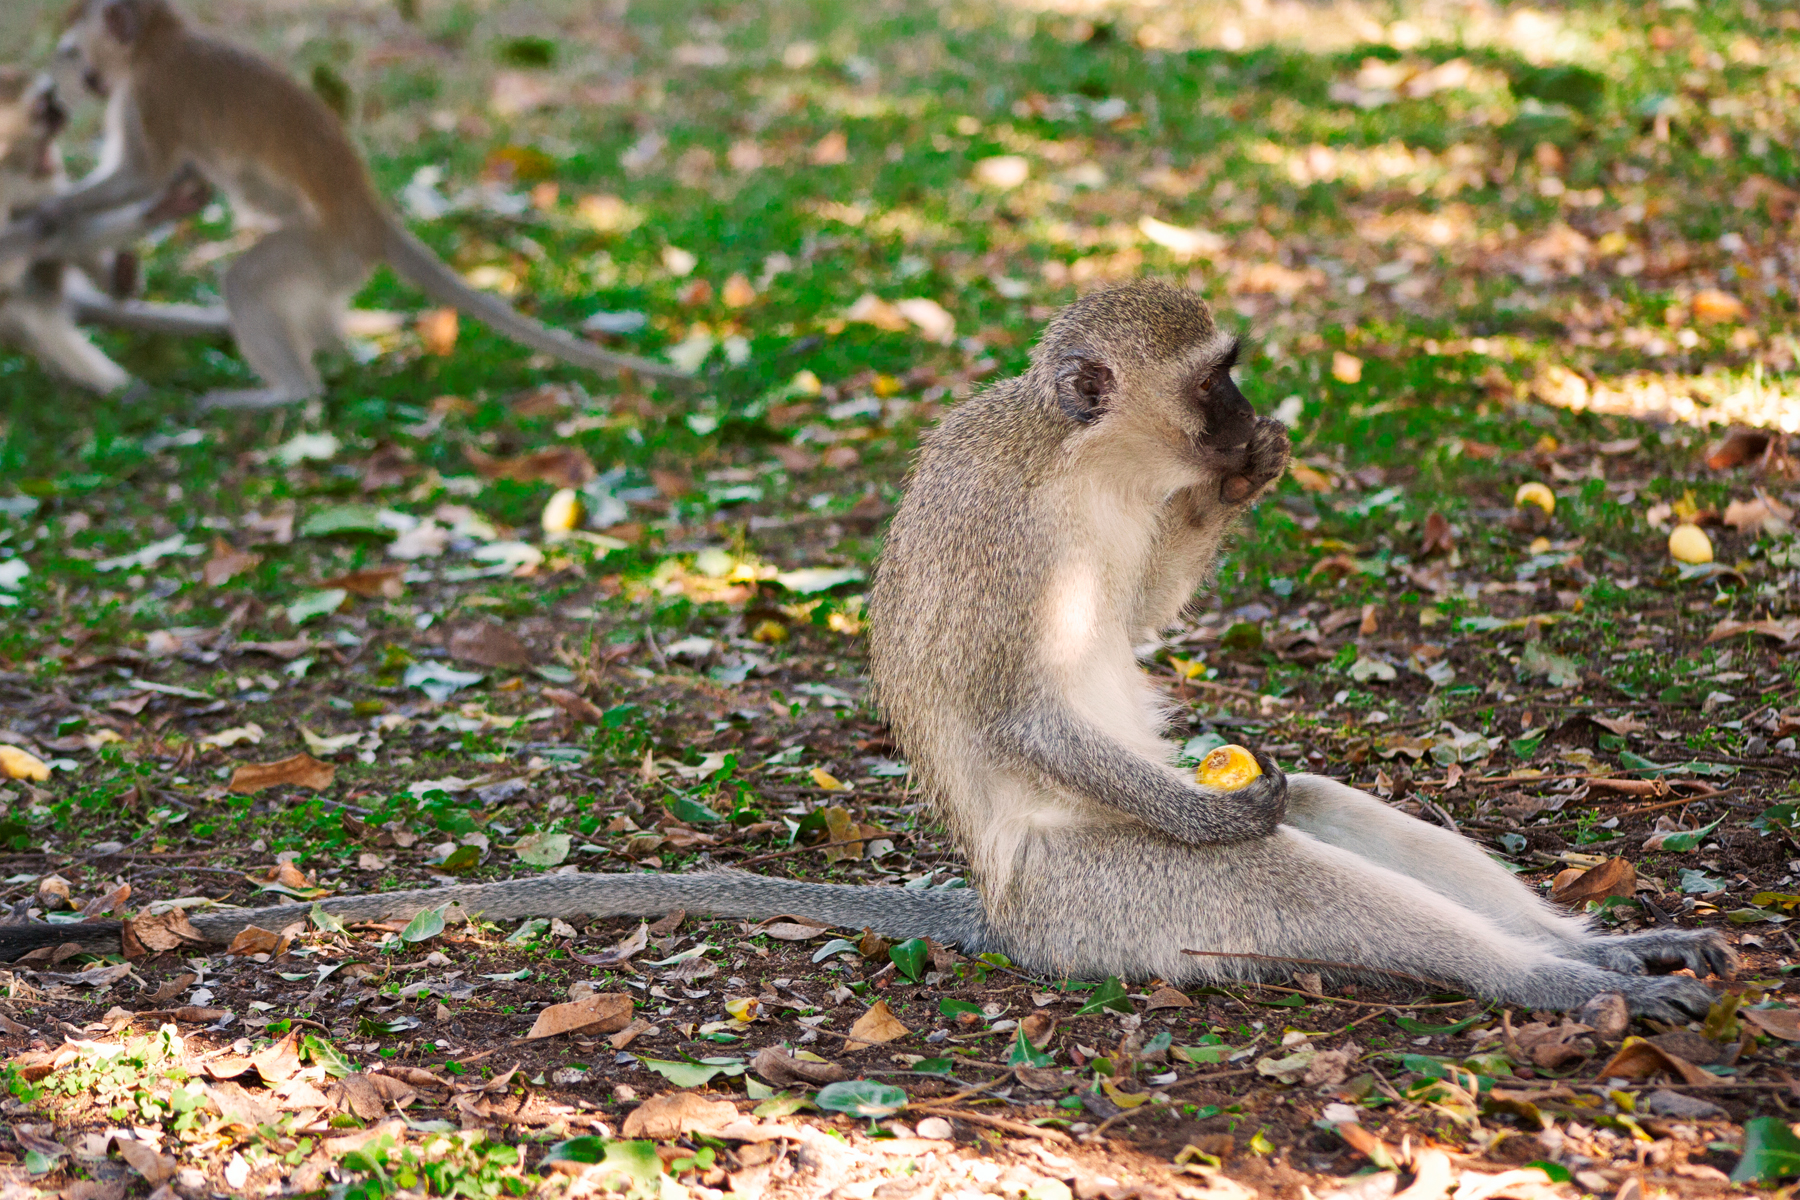 Vervet Monkey, Africa, Safari, Nature, Outside, HQ Photo